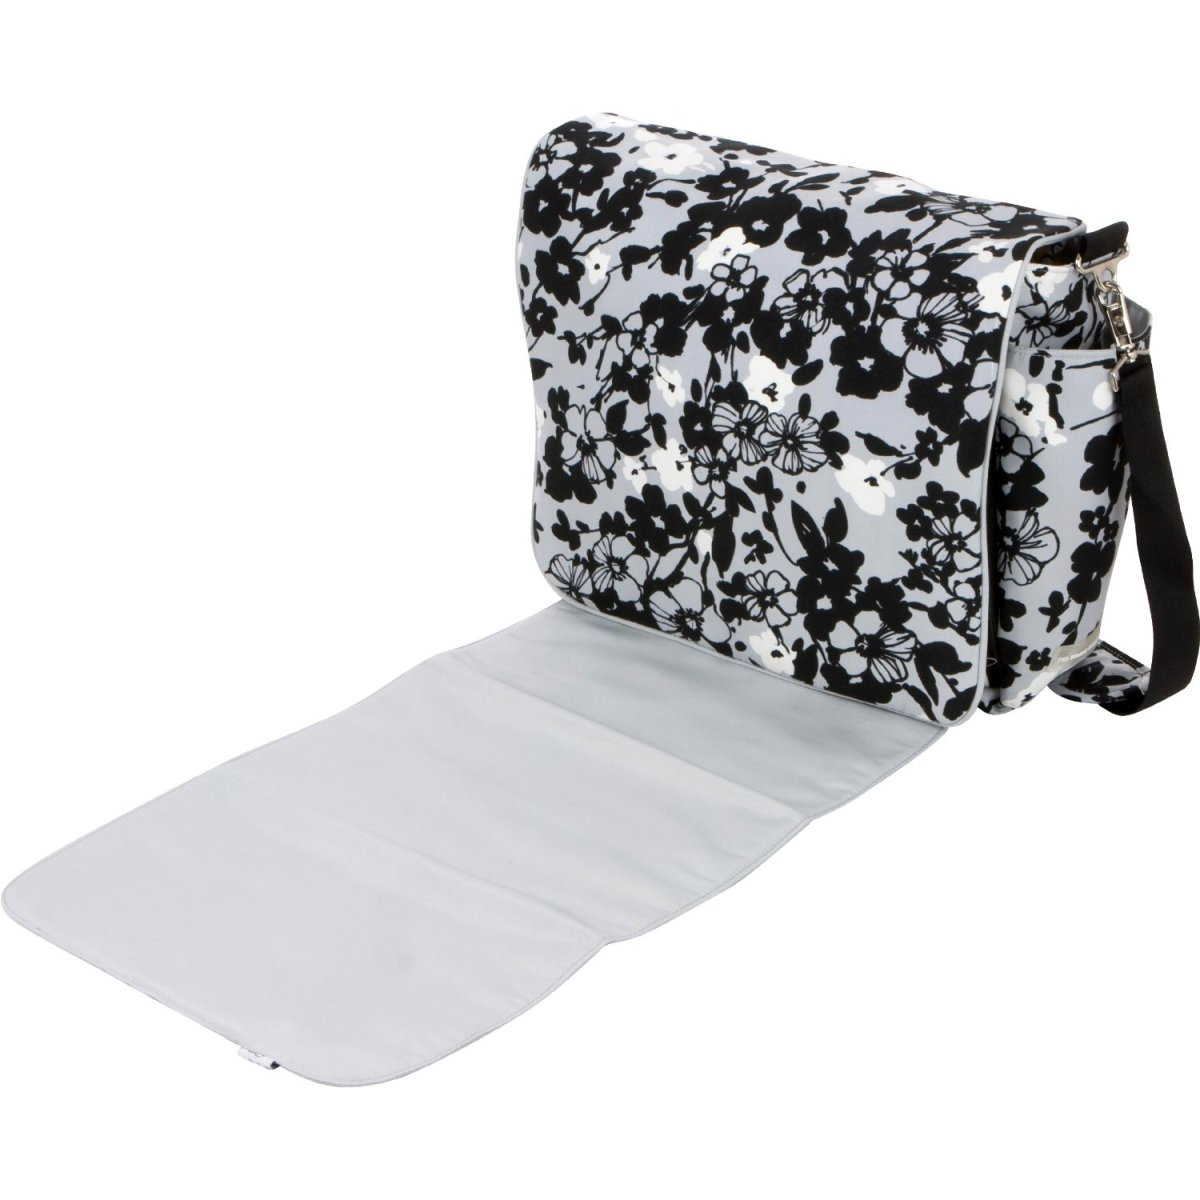 Bumble Bags diaper bag with changing pad.